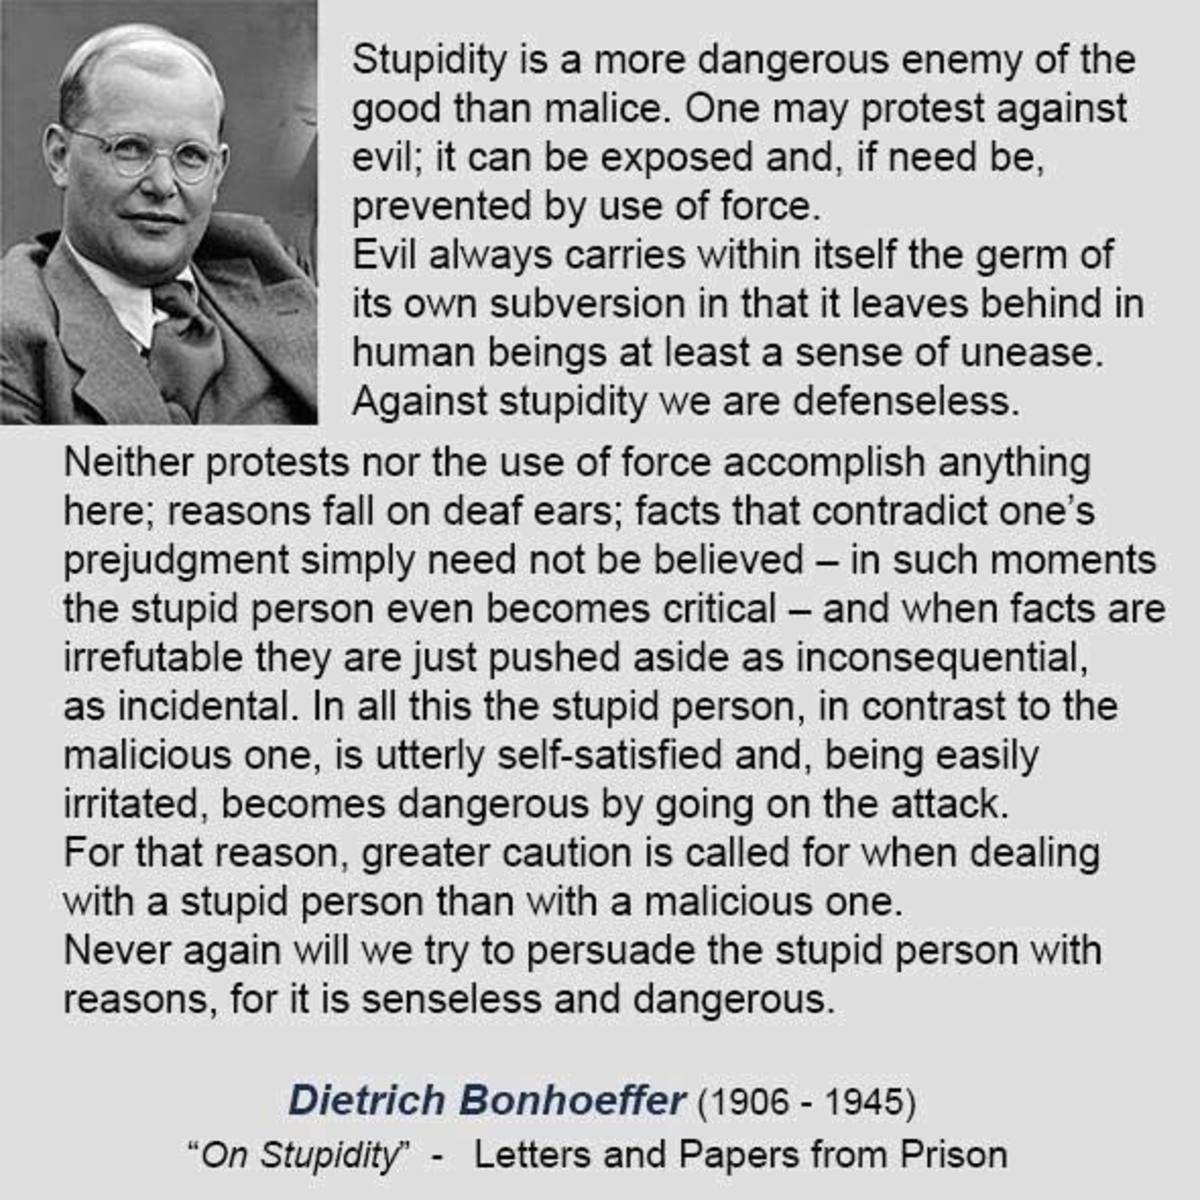 Against stupidity the gods themselves fight in vain